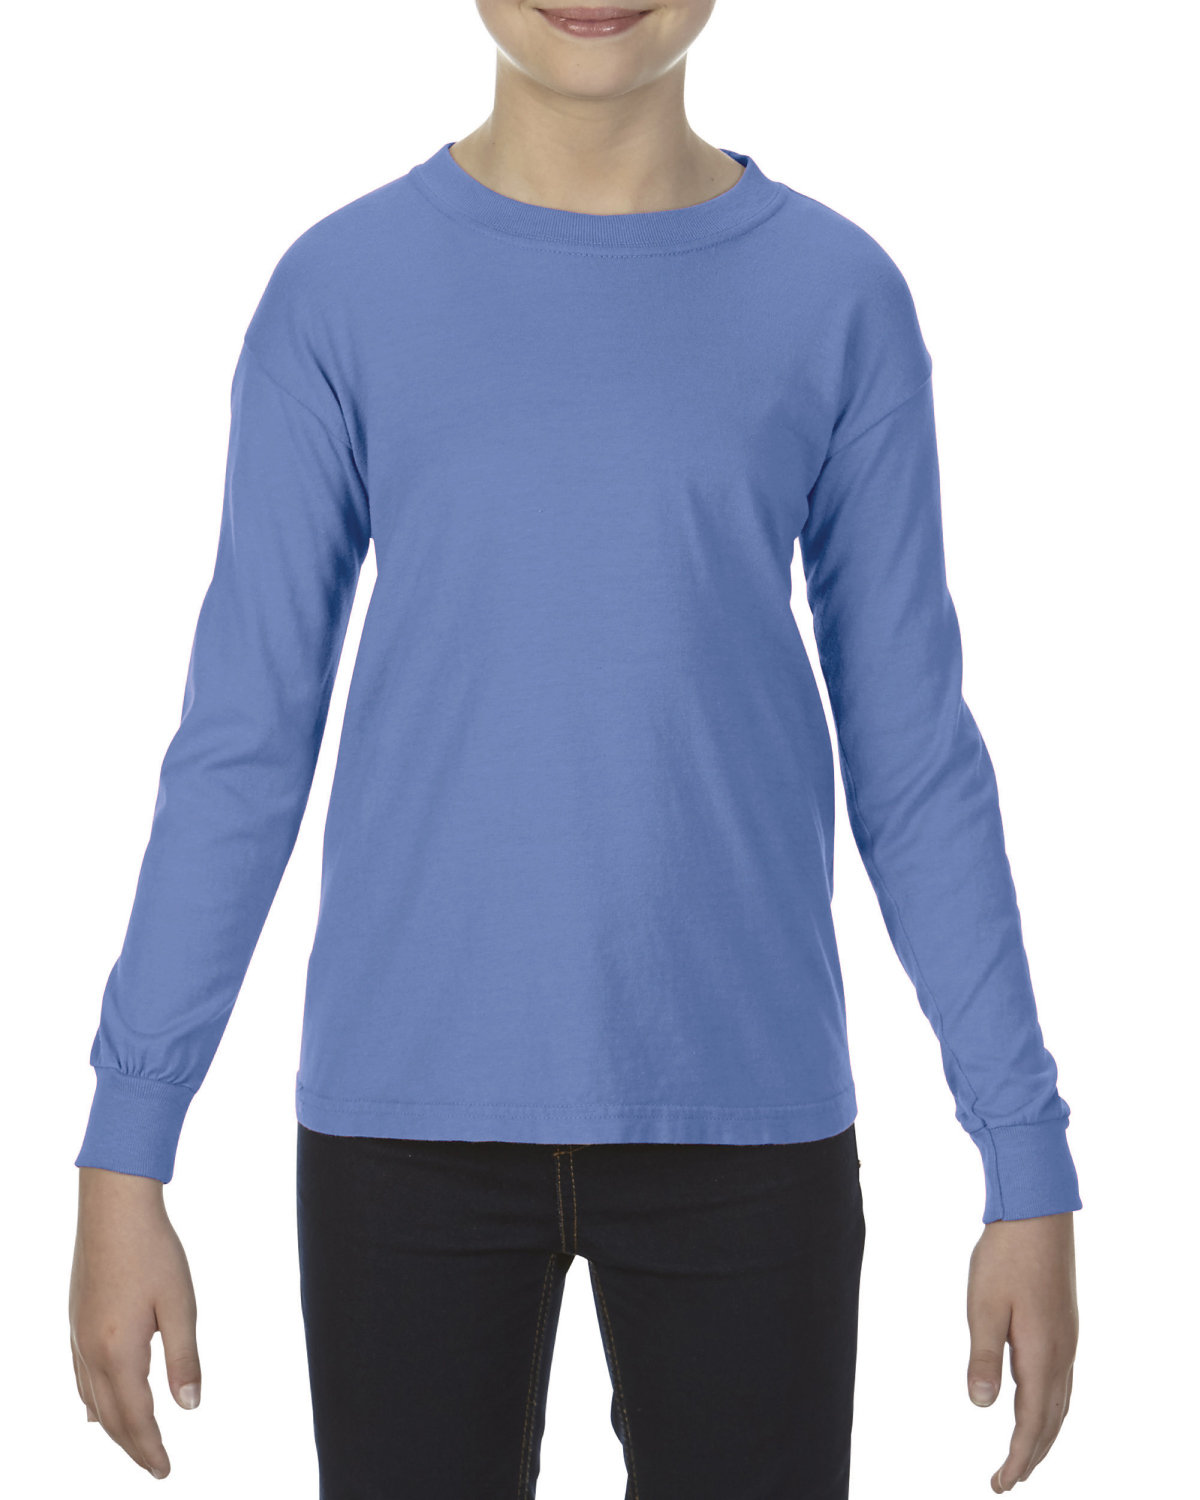 Comfort Colors Youth Garment-Dyed Long-Sleeve T-Shirt FLO BLUE